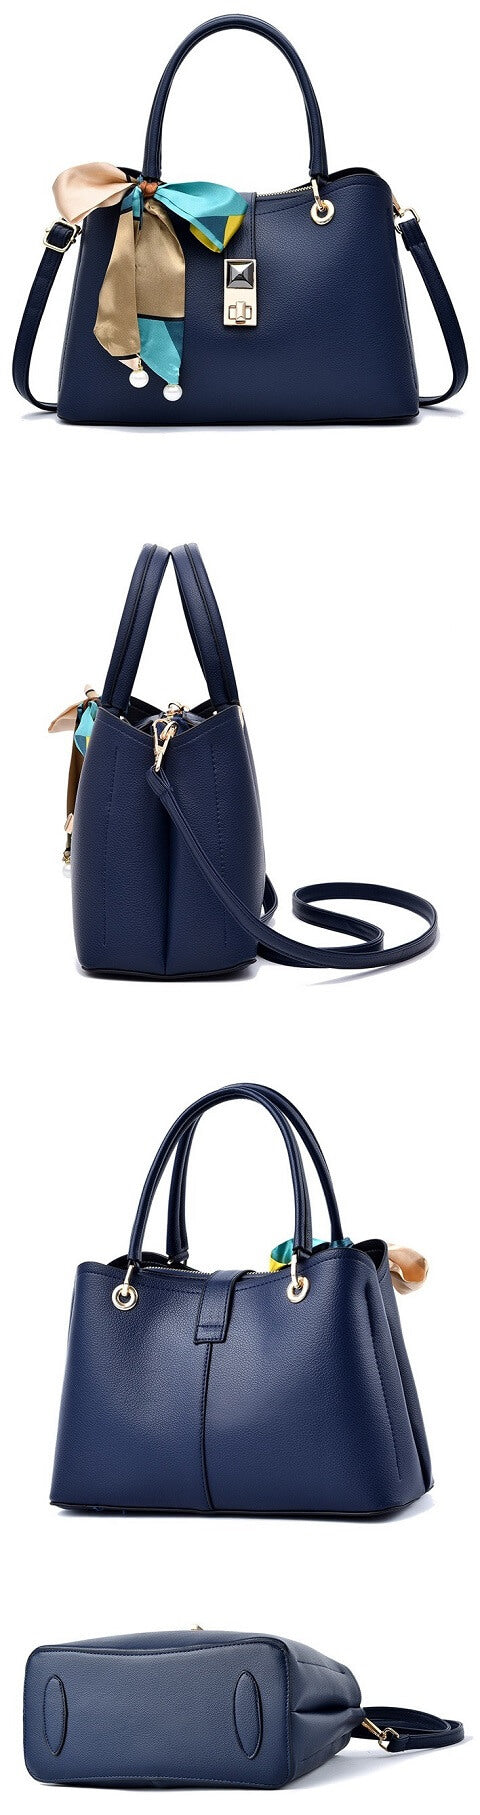 Adrienne Contreras handbag can be transformed from a crossbody bag to a top-handle bag to suit your ensembles.